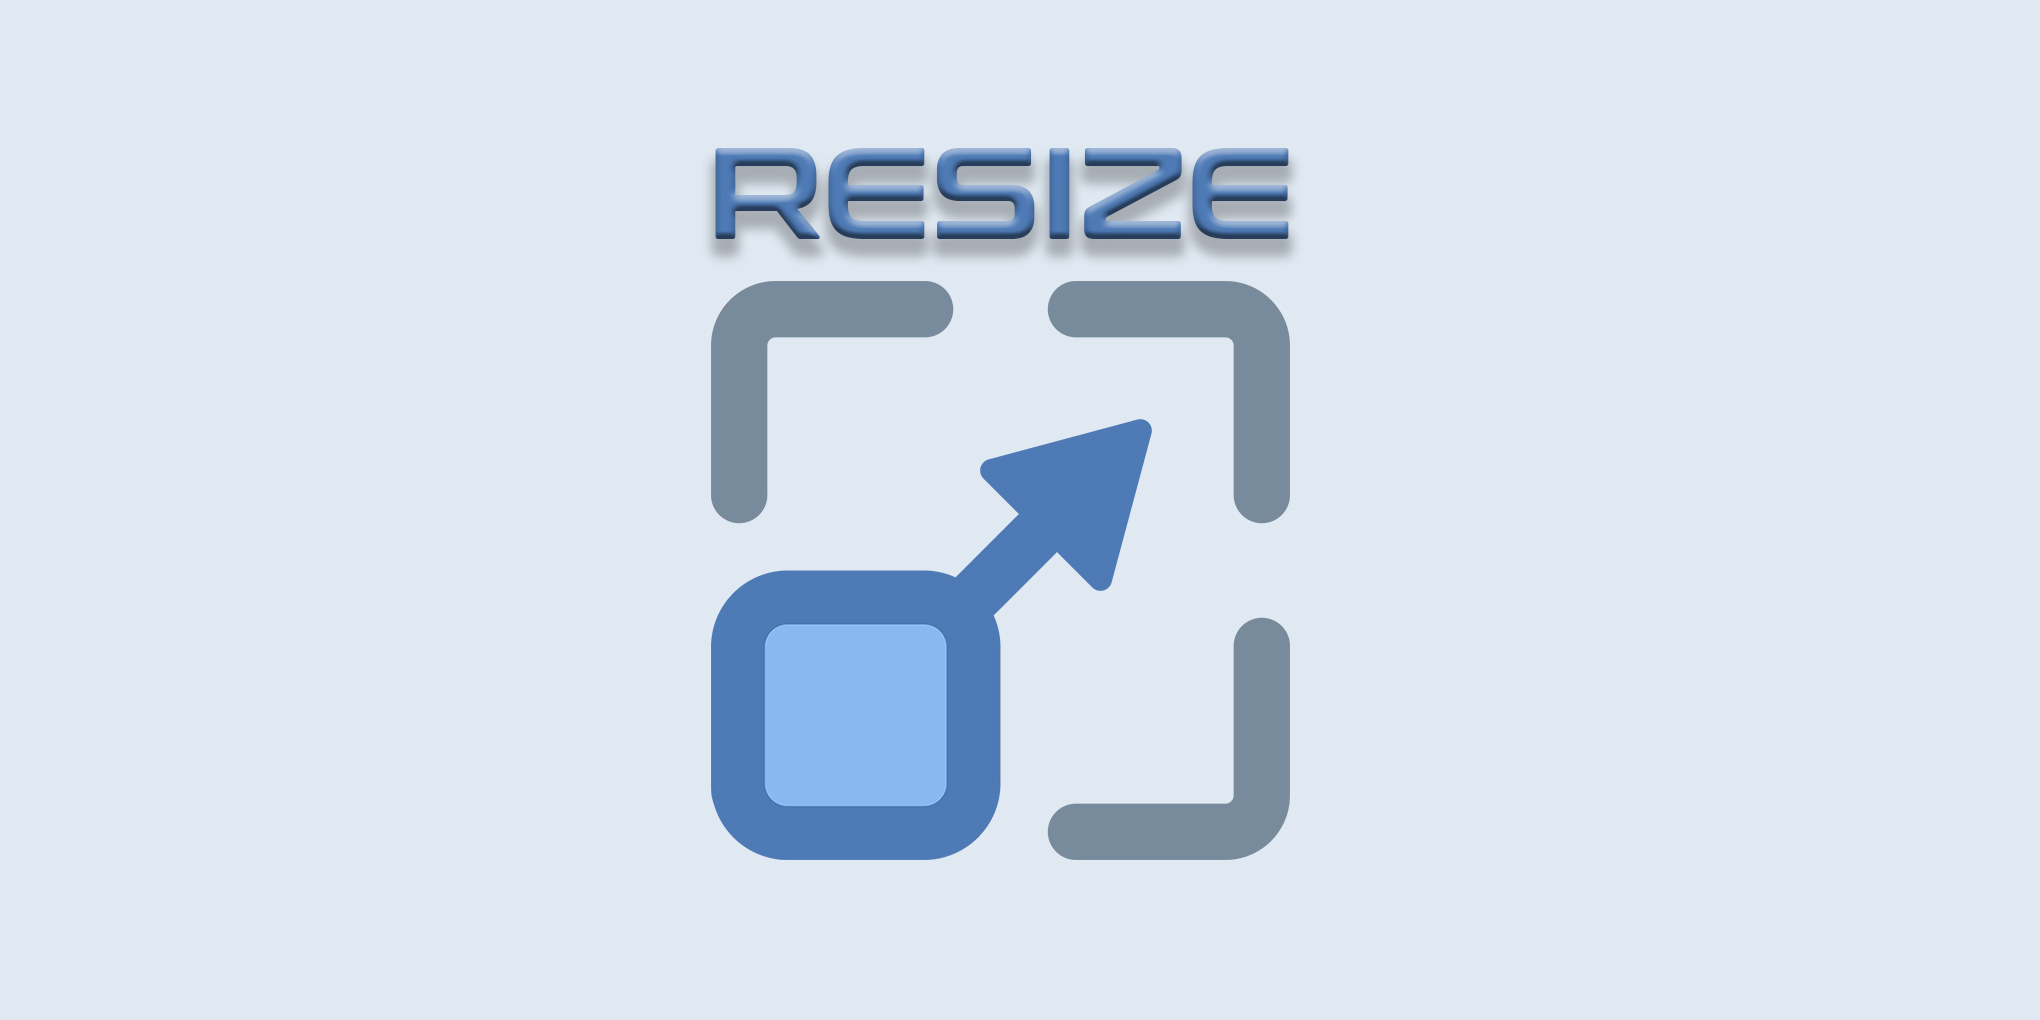 resize-do-you-offer-to-resize-the-listed-machine-embroidery-designs